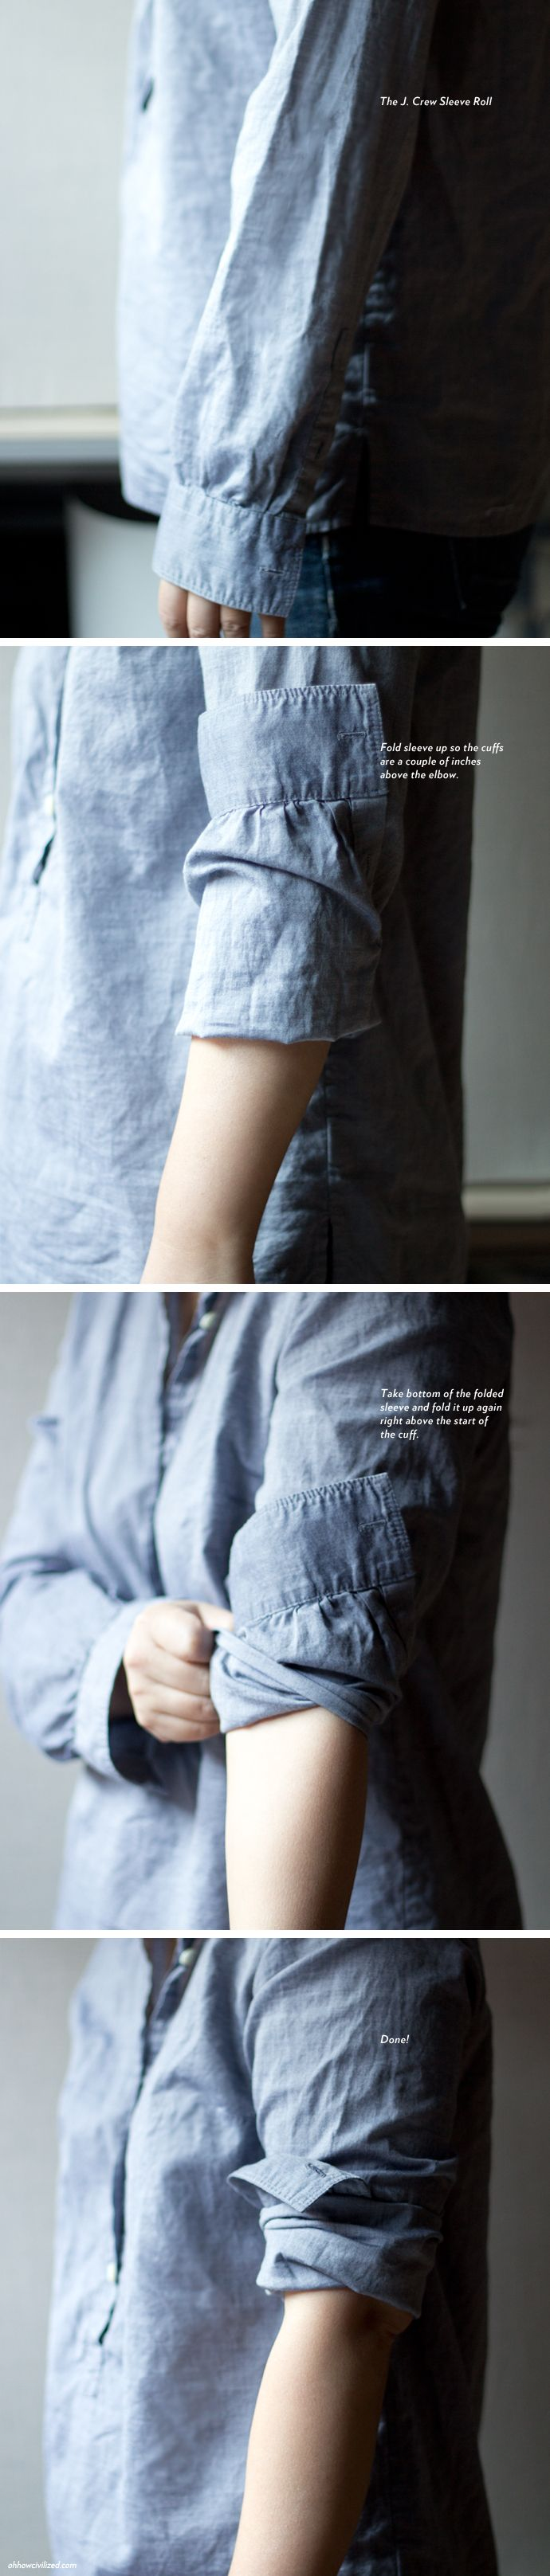 The J. Crew Sleeve Roll — Oh, How Civilized